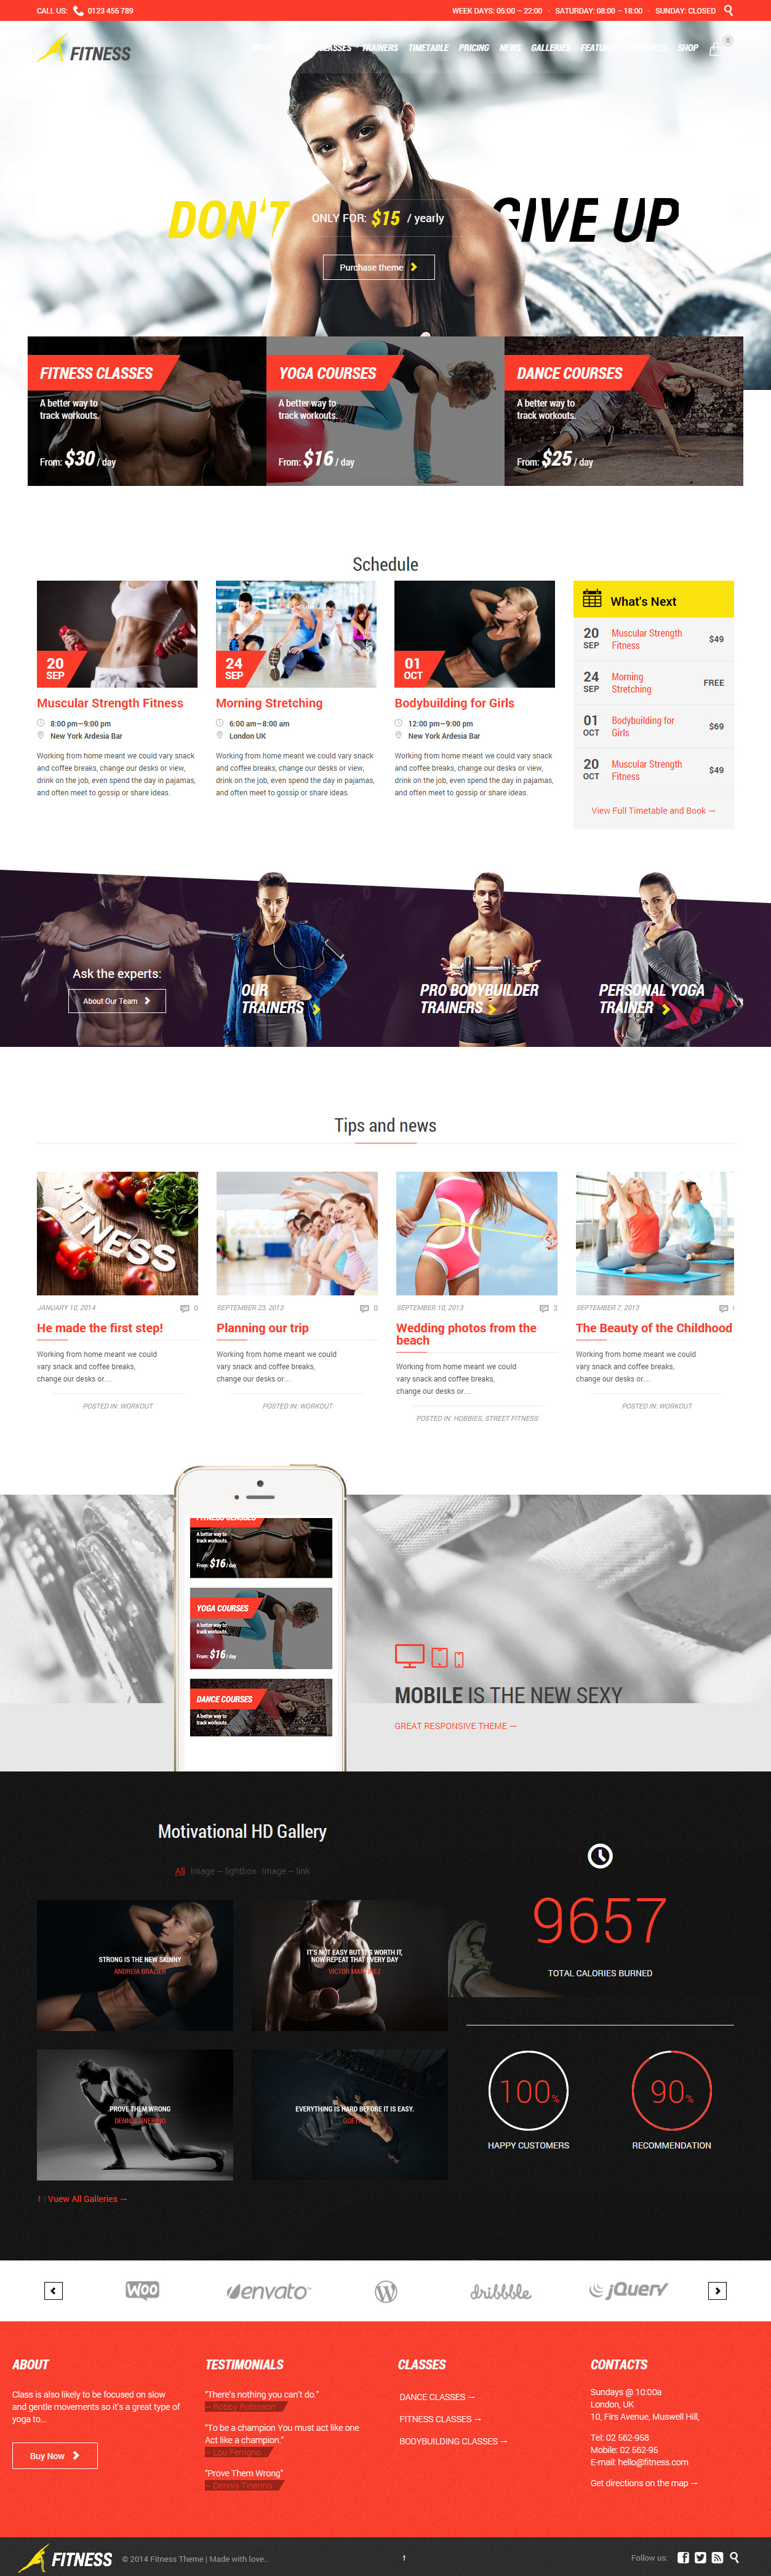 30 Best WordPress Fitness and Gym Themes in 2017 - Responsive Miracle